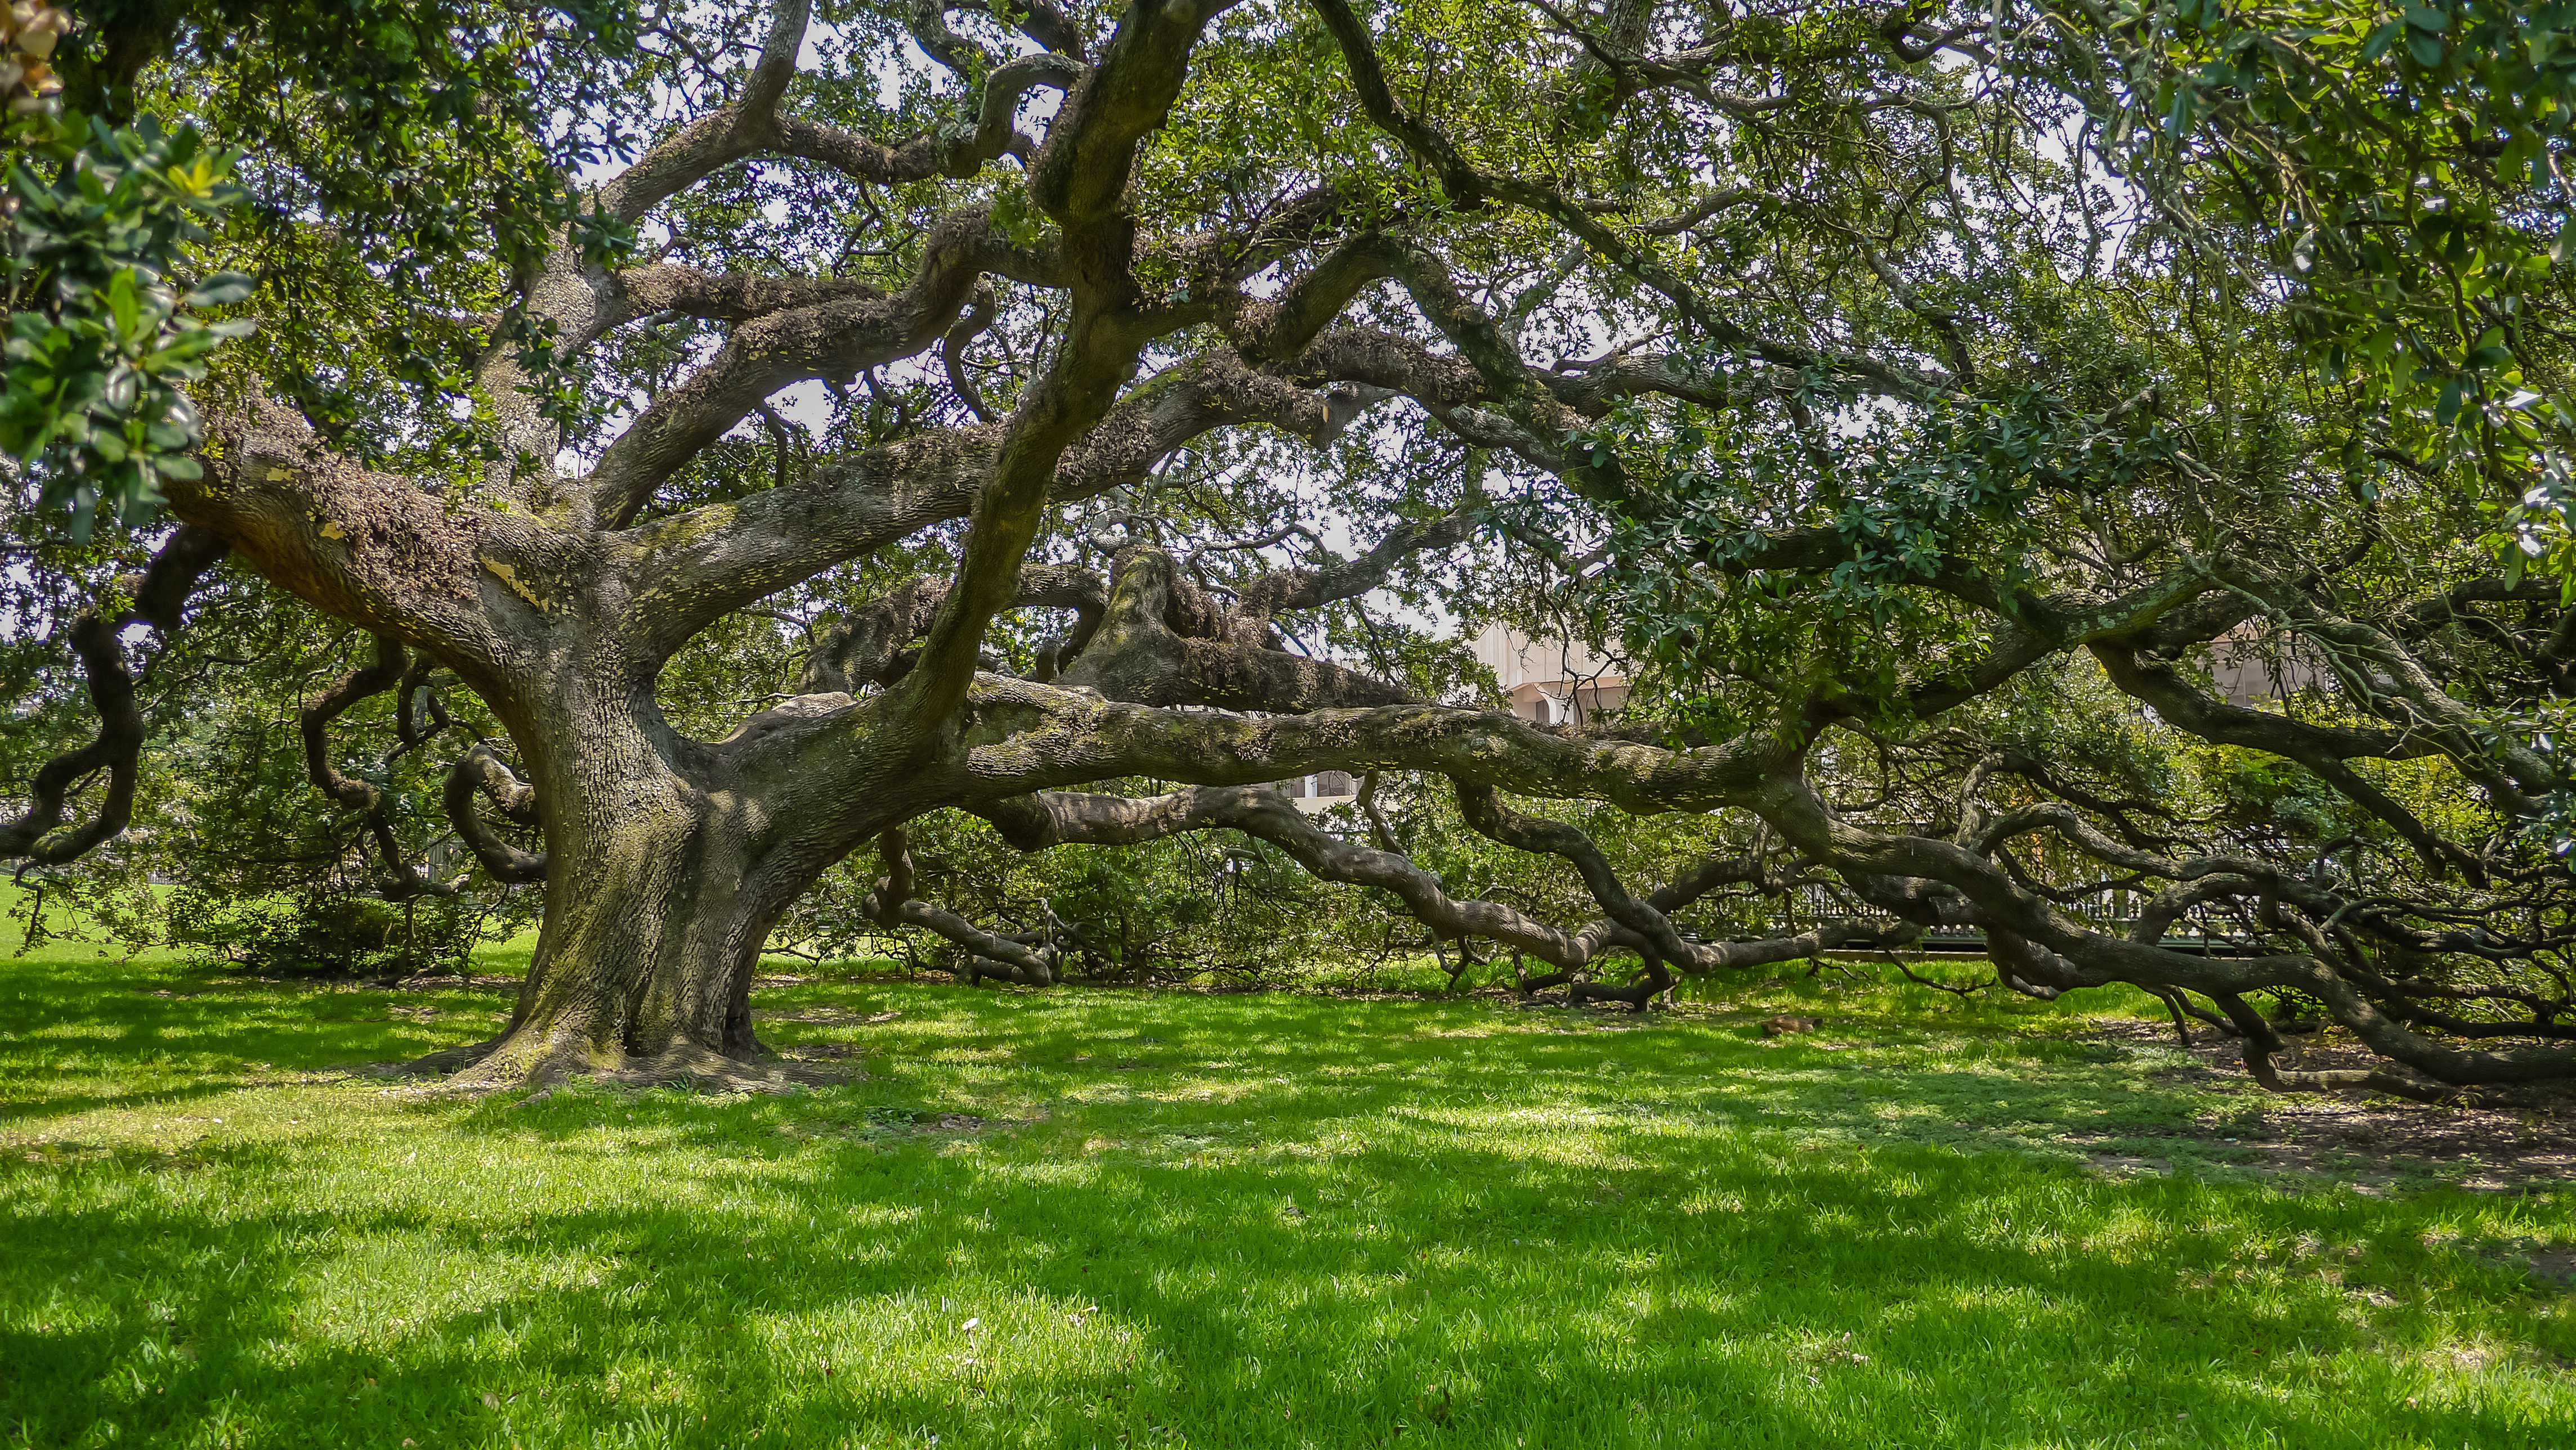 A large oak tree with long, low branches shading the grass-covered ground.